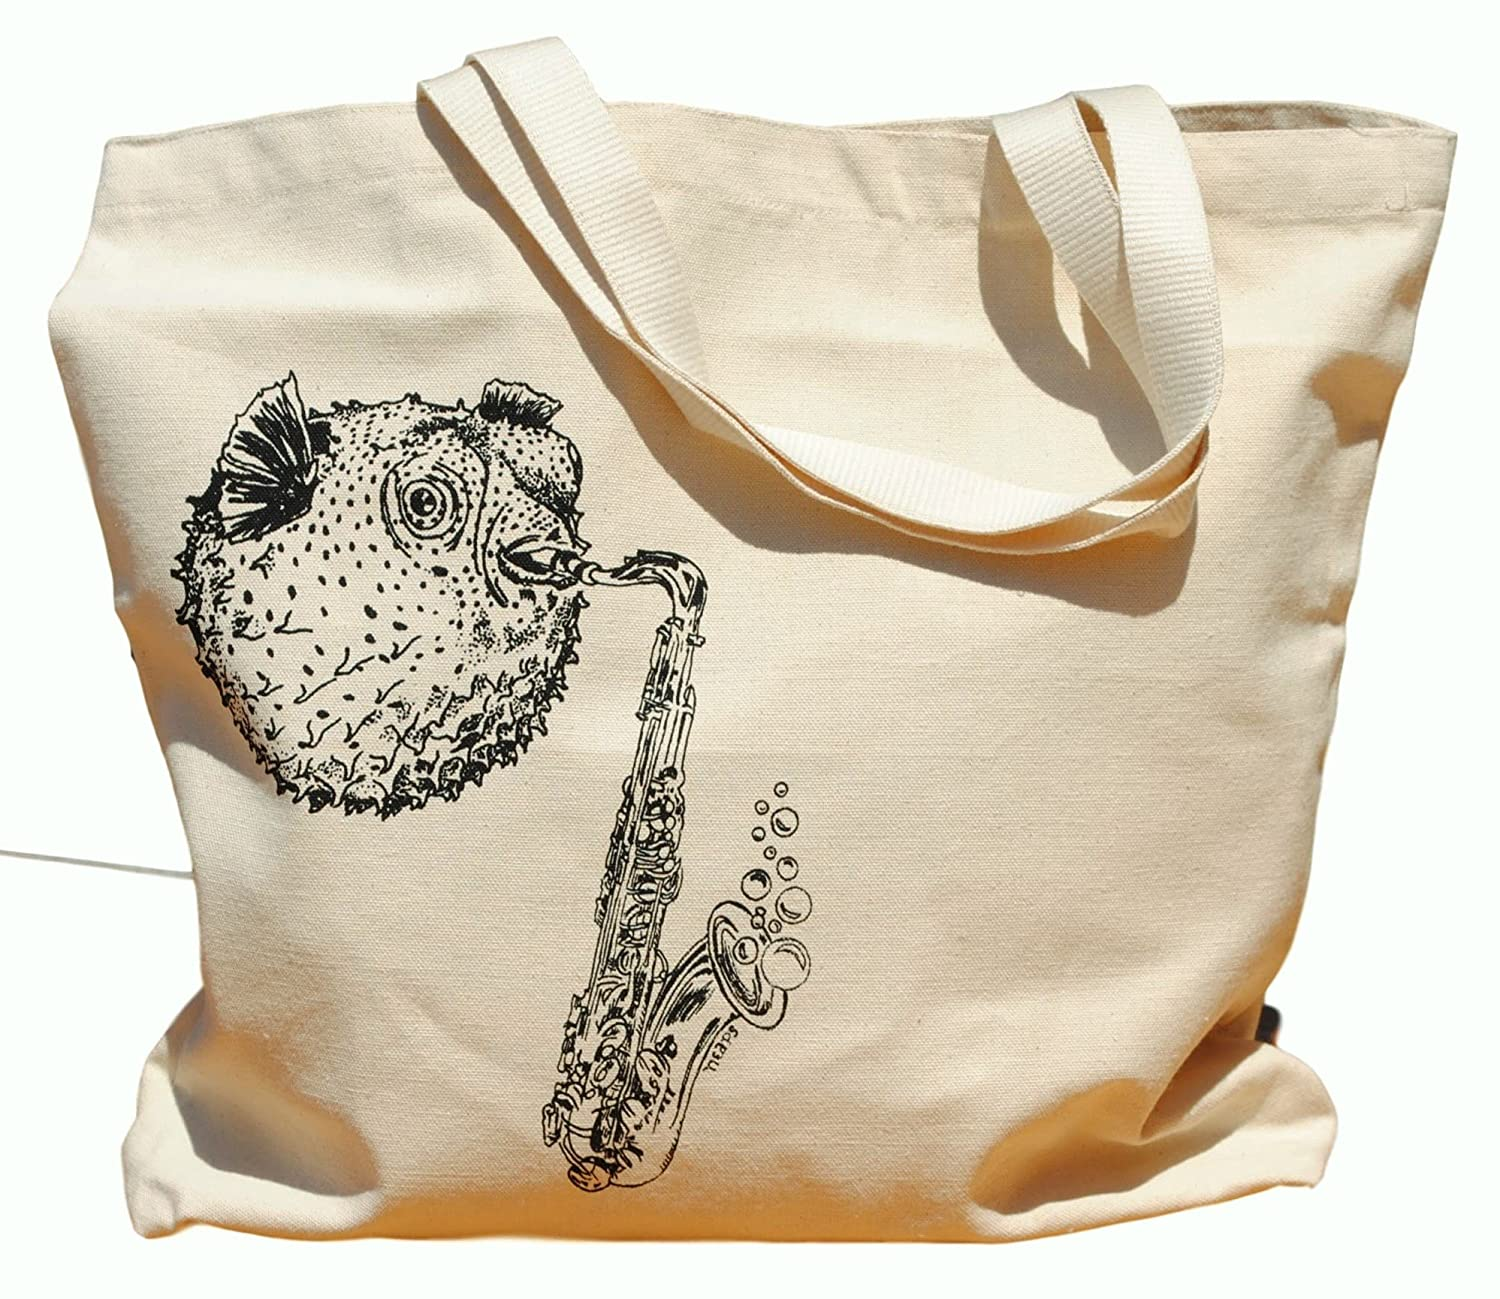 Canvas Tote Bag - Hand Printed Blow Fish Playing Saxophone - Market Travel Beach Shopper Grocery School